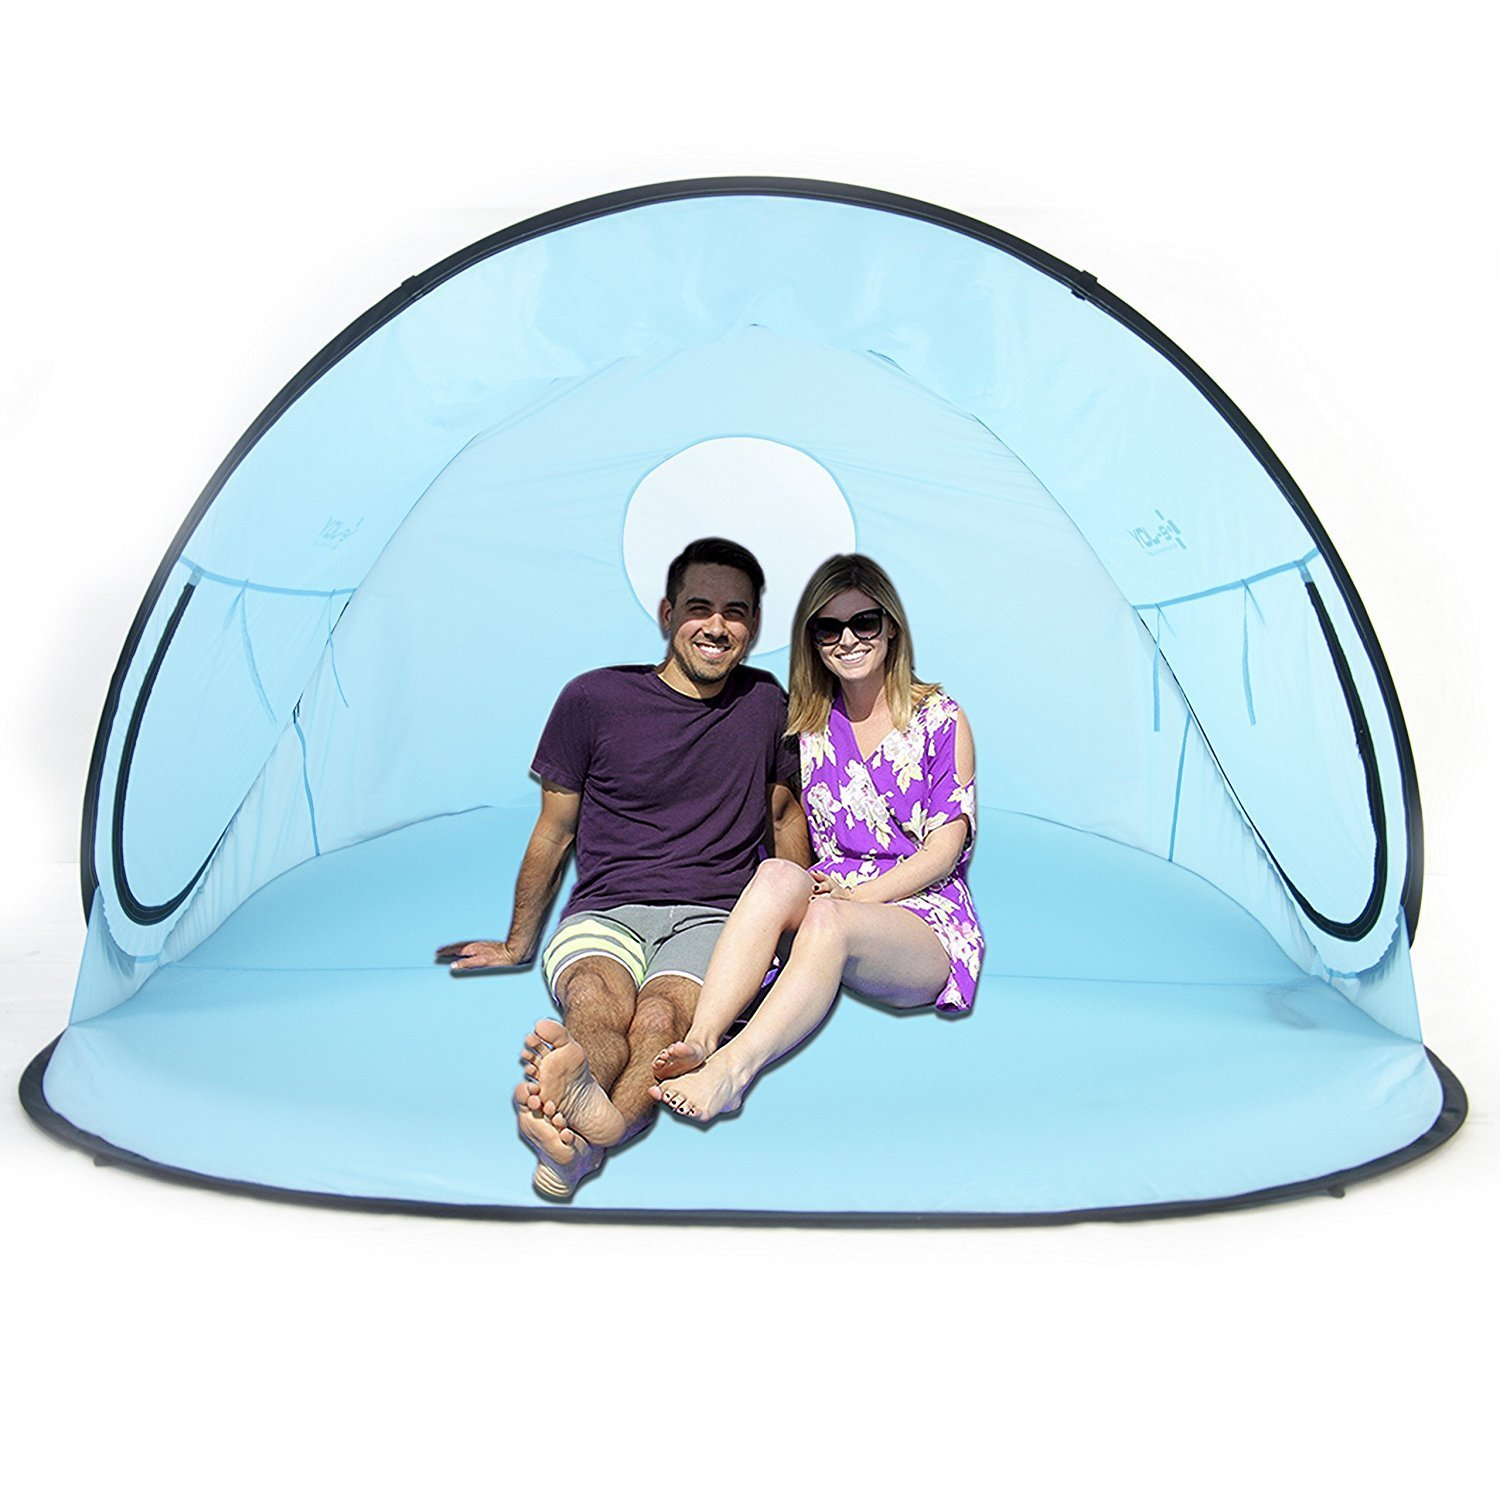 Automatic Pop Up Instant Portable Outdoors Beach Tent , Lightweight Portable Family Sun Shelter Cabana ,Provide UPF 50+ Sun Shelter